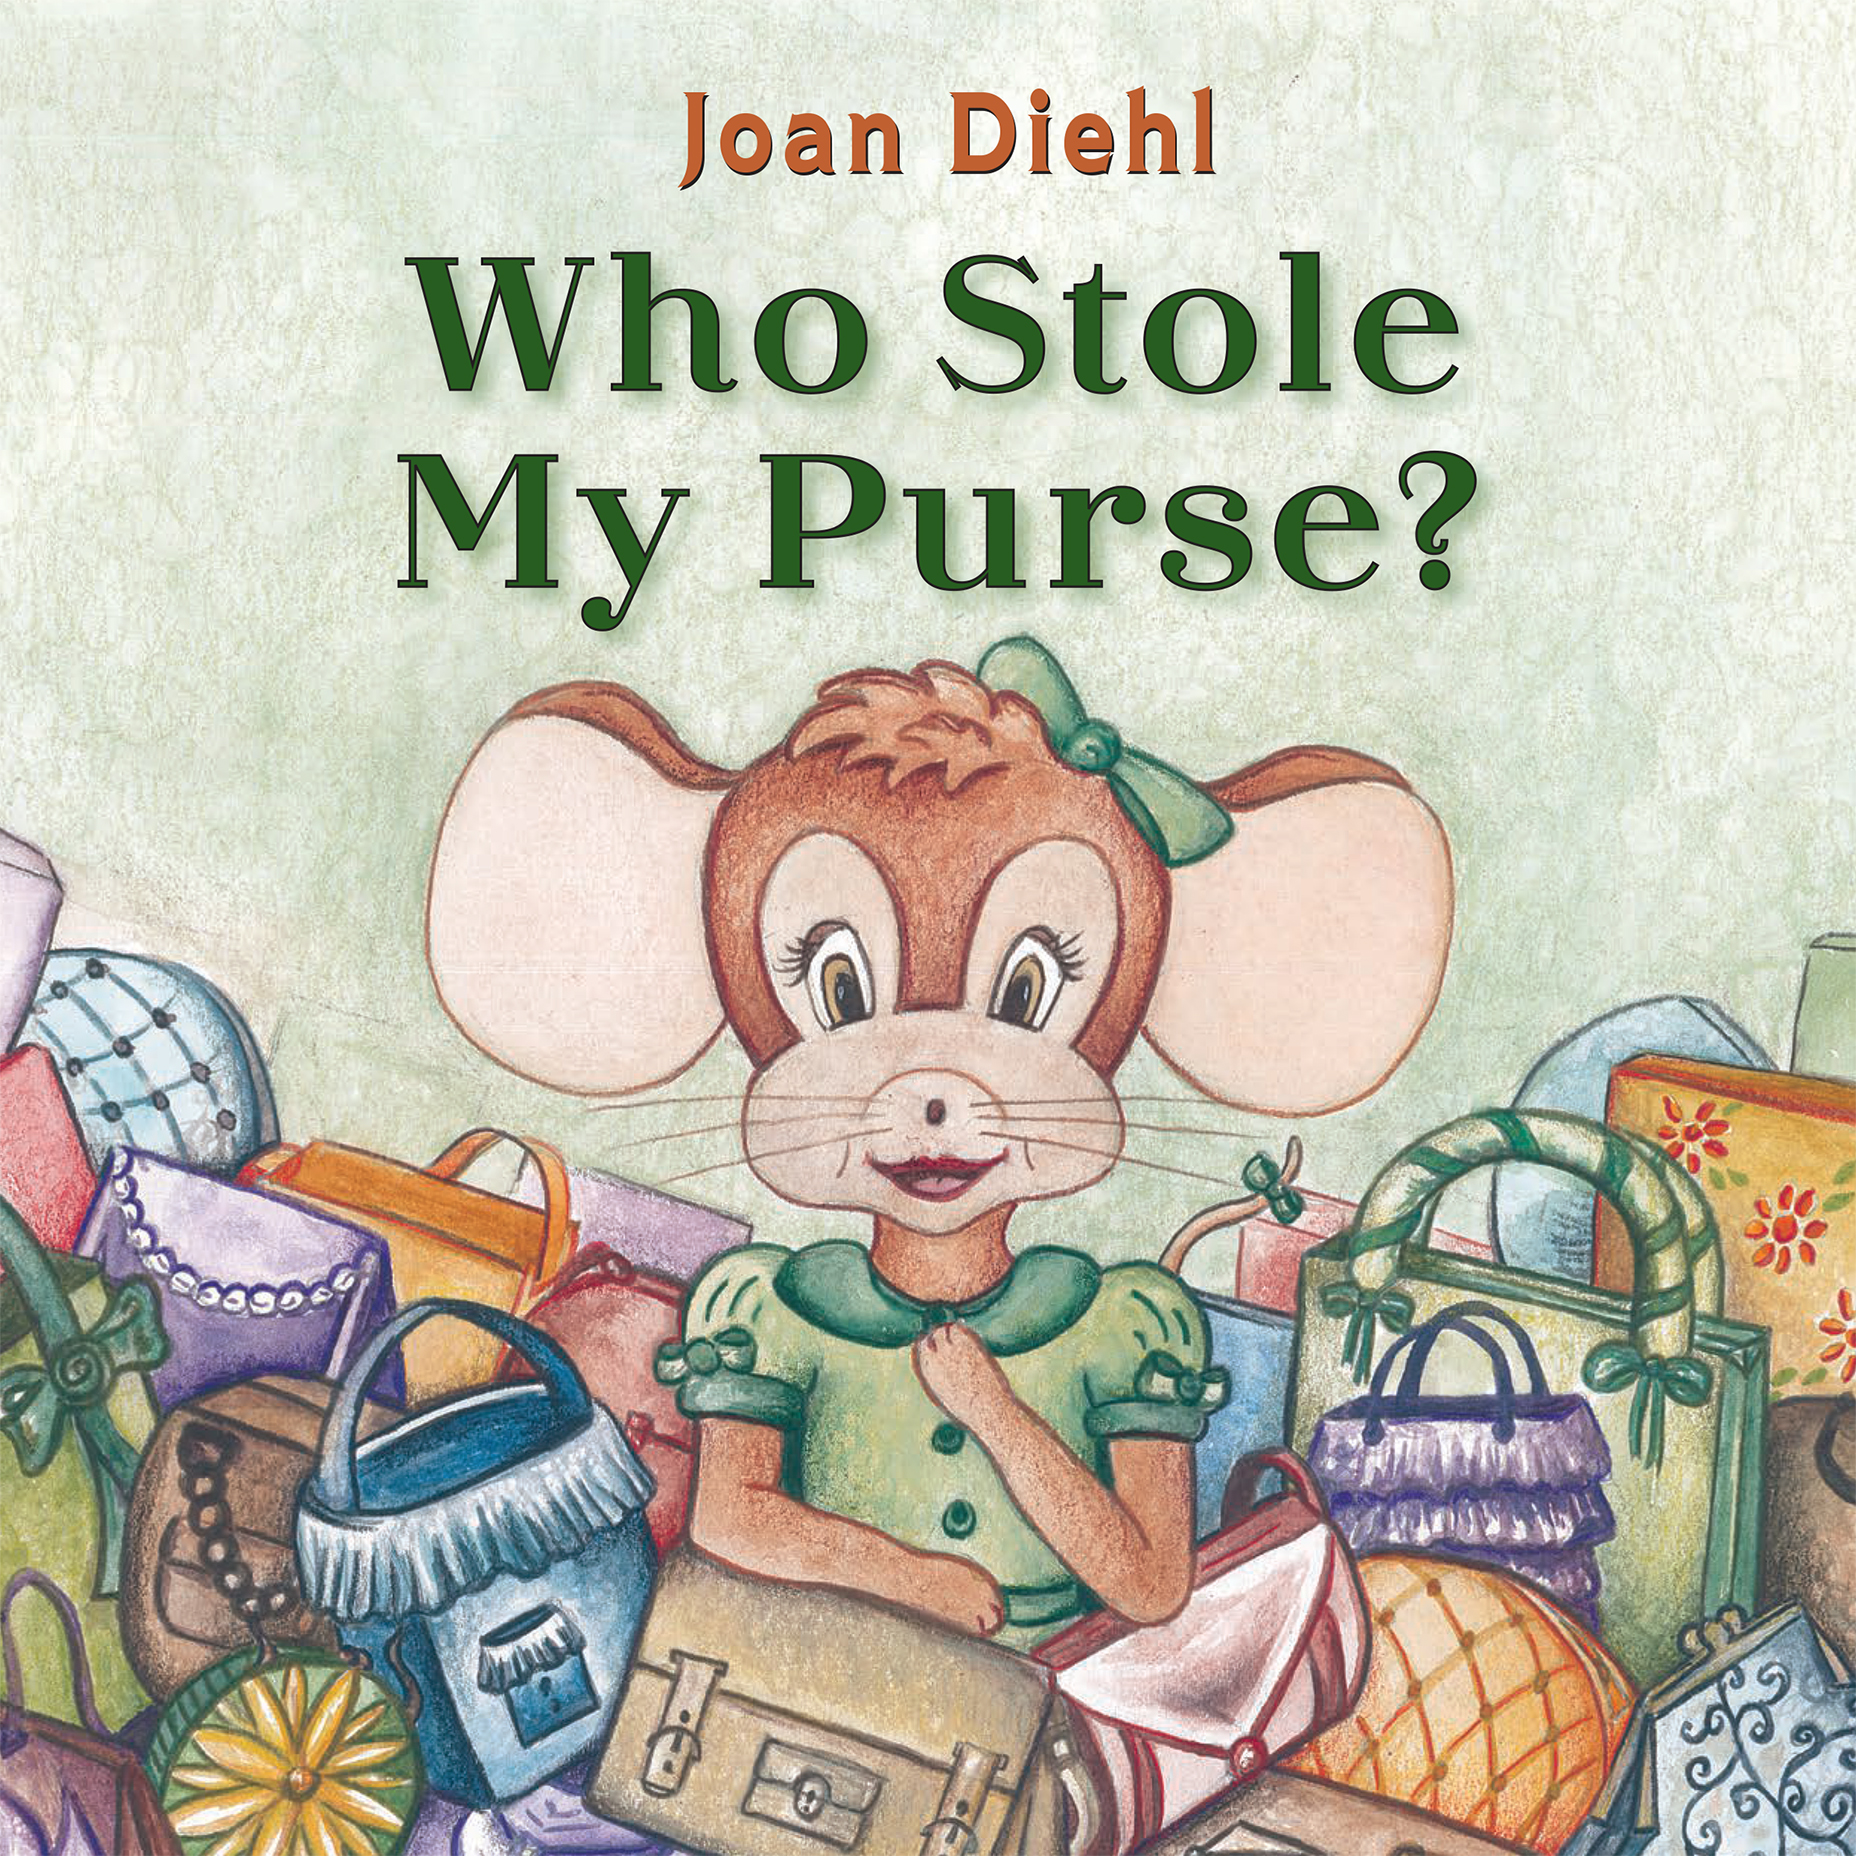 Who Stole My Purse Image